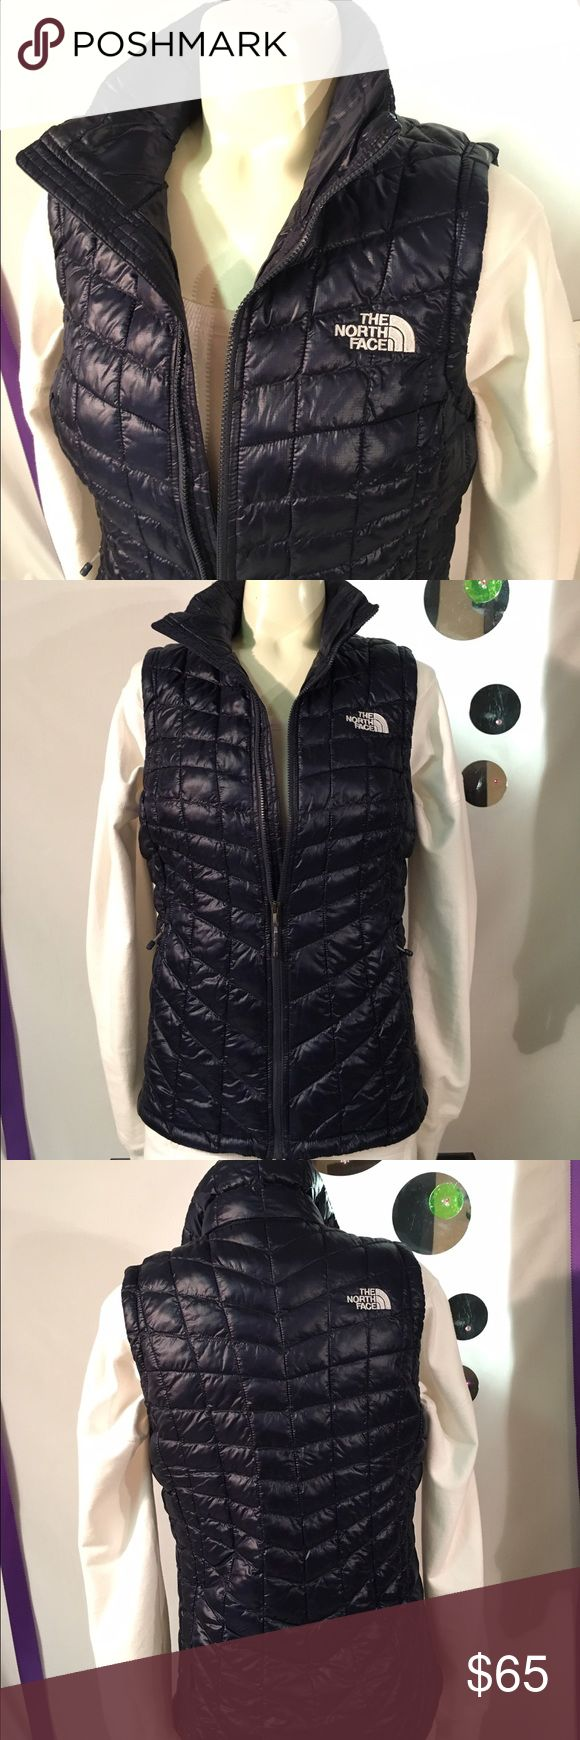 The North Face Vest Worn once! Color is navy blue, size xsmall. No Trading please! Posh rules only! Thank you! North Face Jackets & Coats Vests